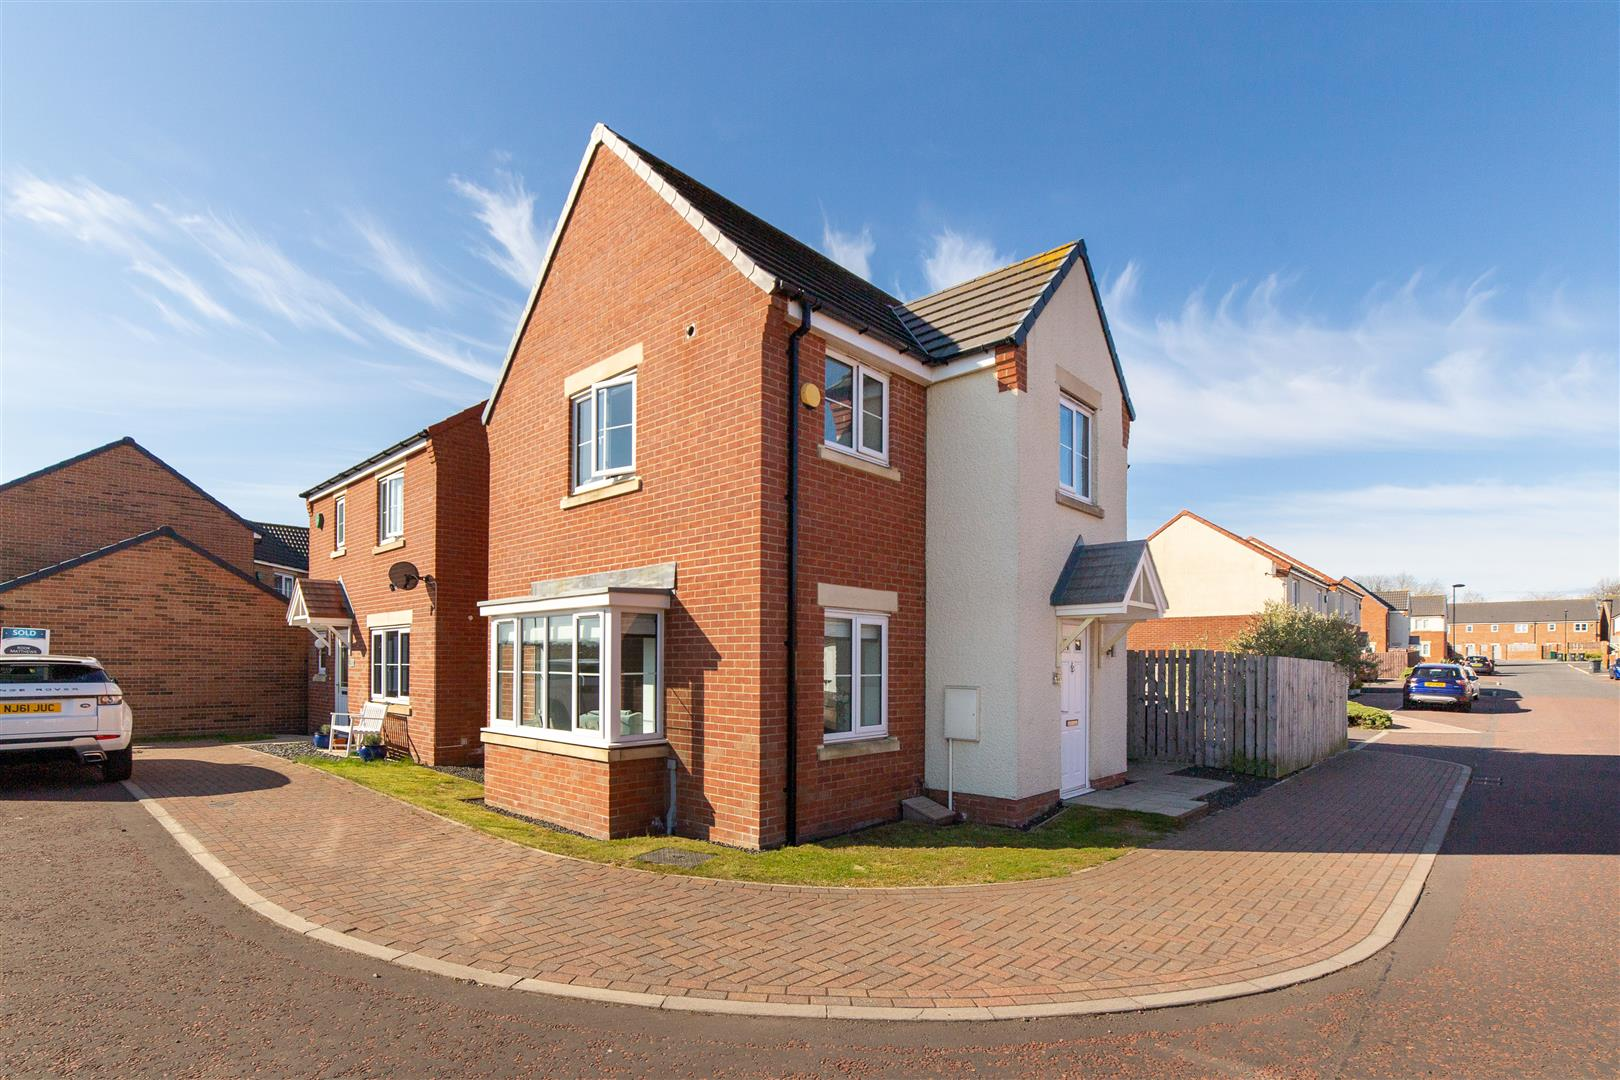 3 bed detached house for sale in Havannah Drive, Wideopen, NE13